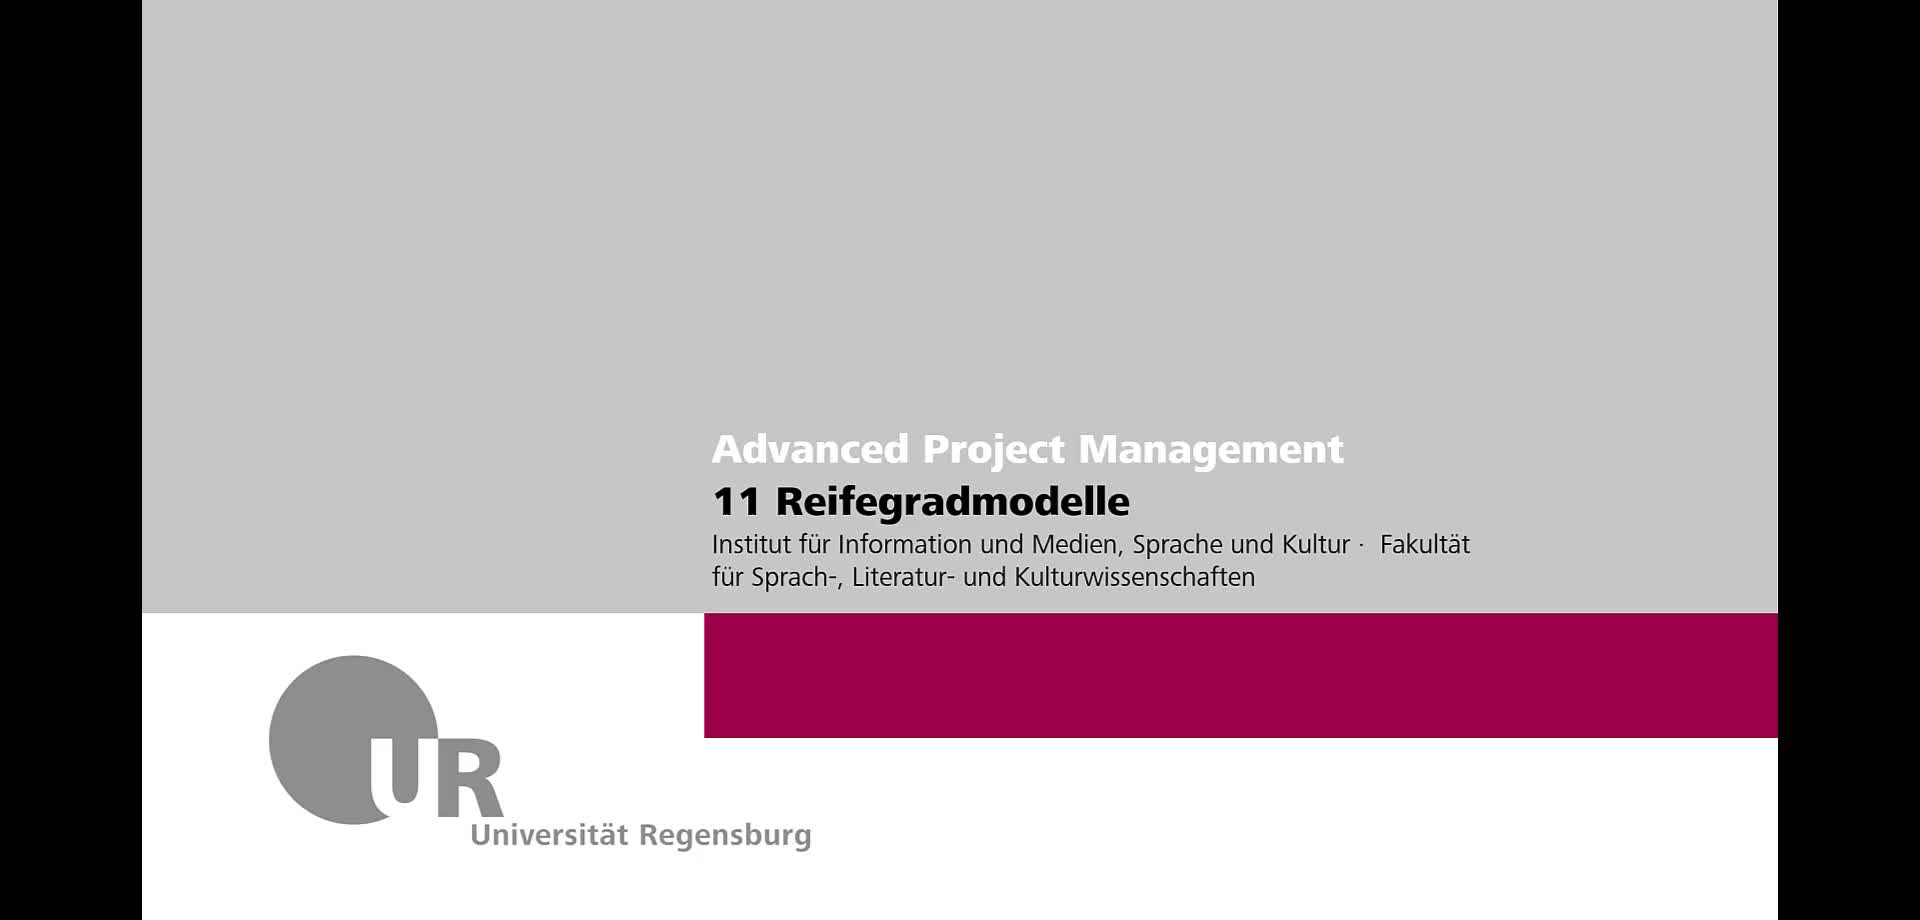 Advanced IT Project Management WS 2021: 11 Reifegradmodelle